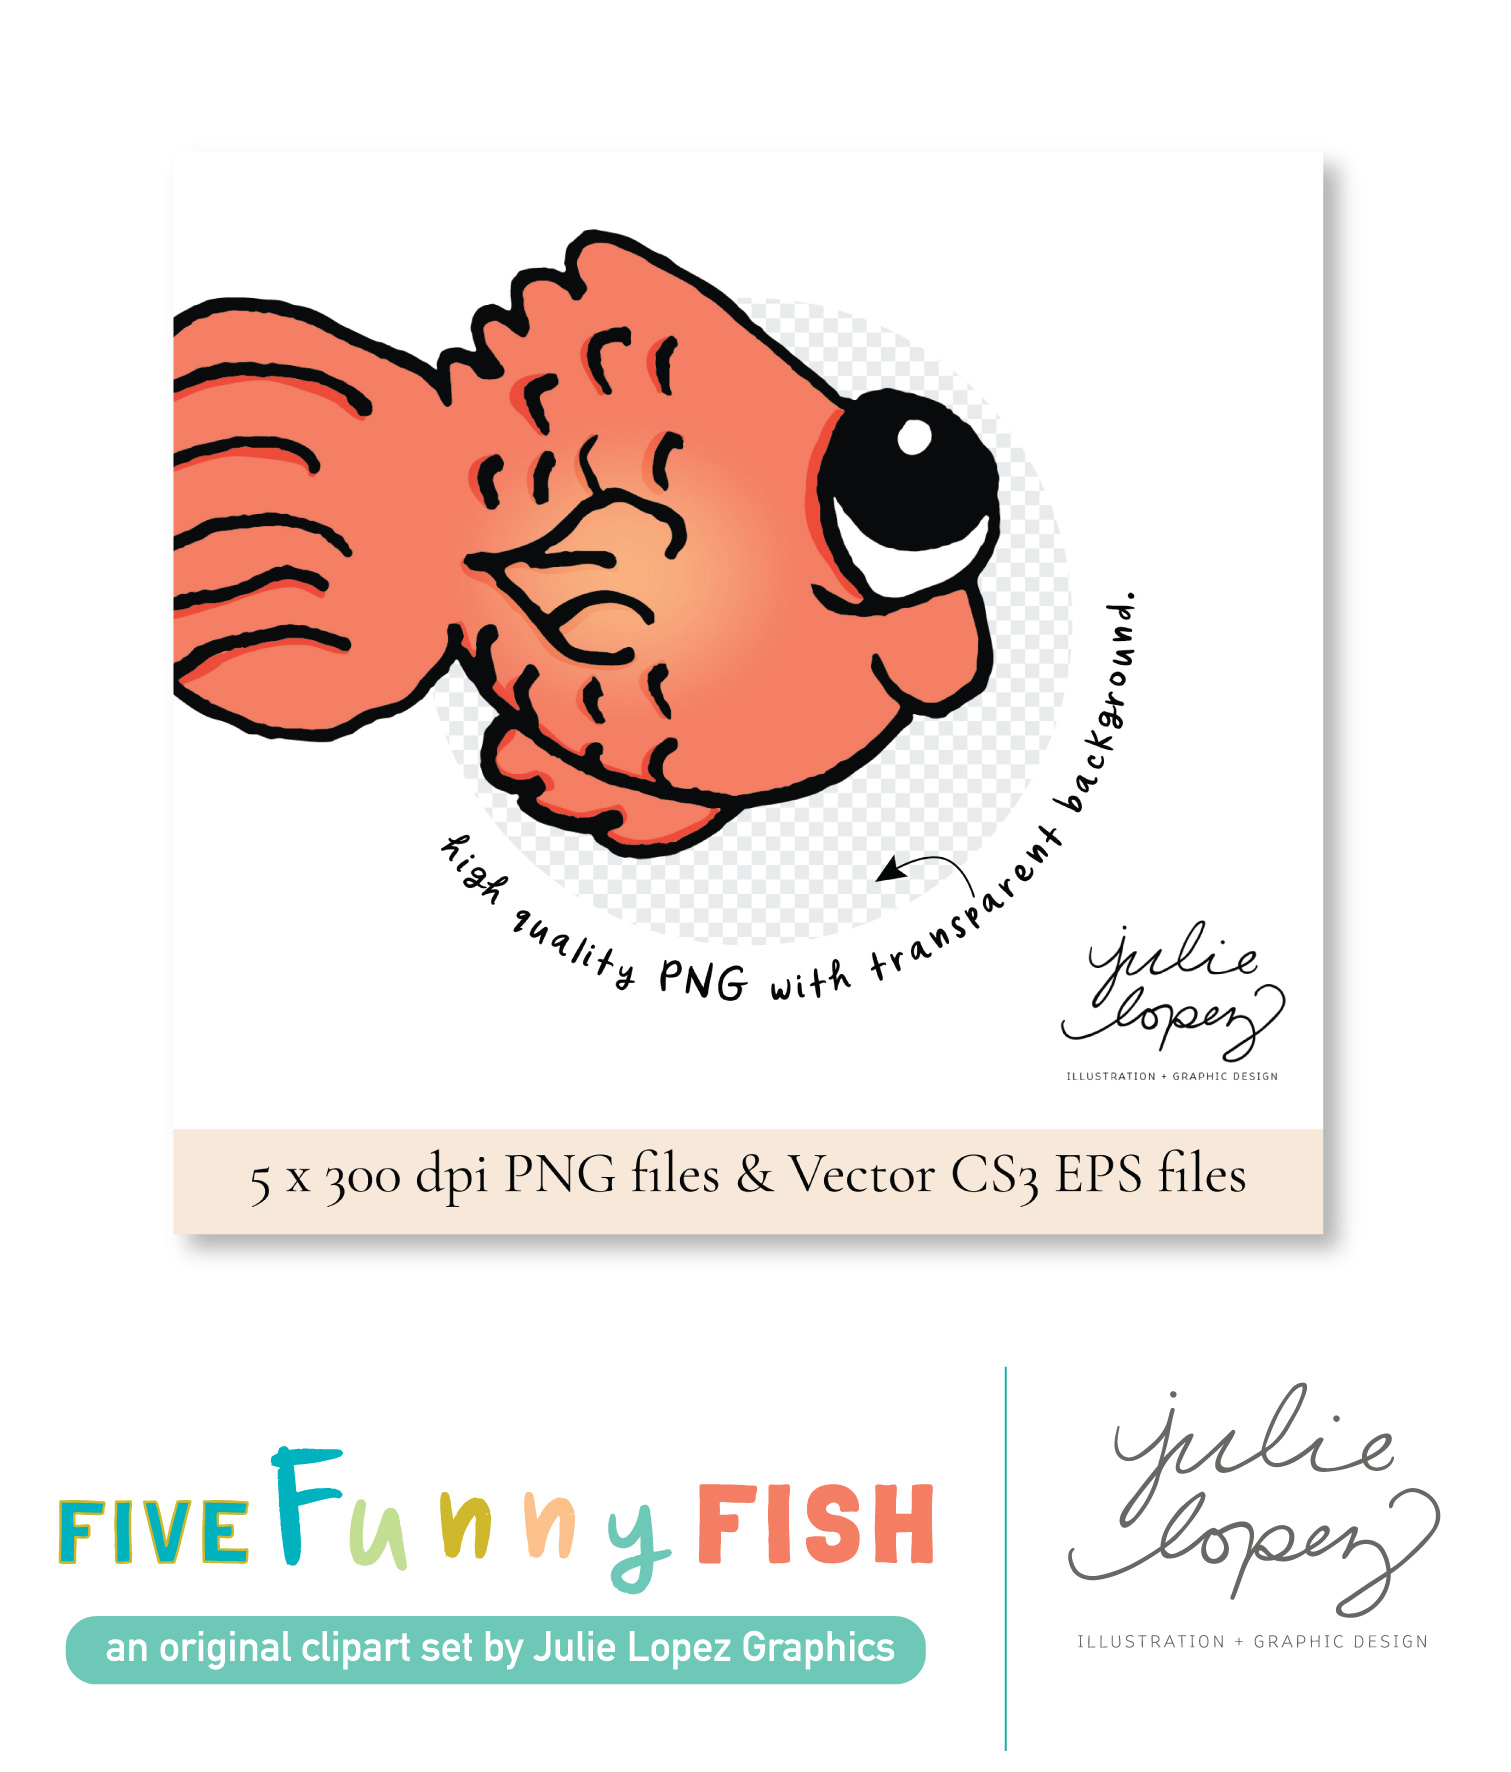 Funny_Fish_blog_COLOUR_blog copy 4.jpg